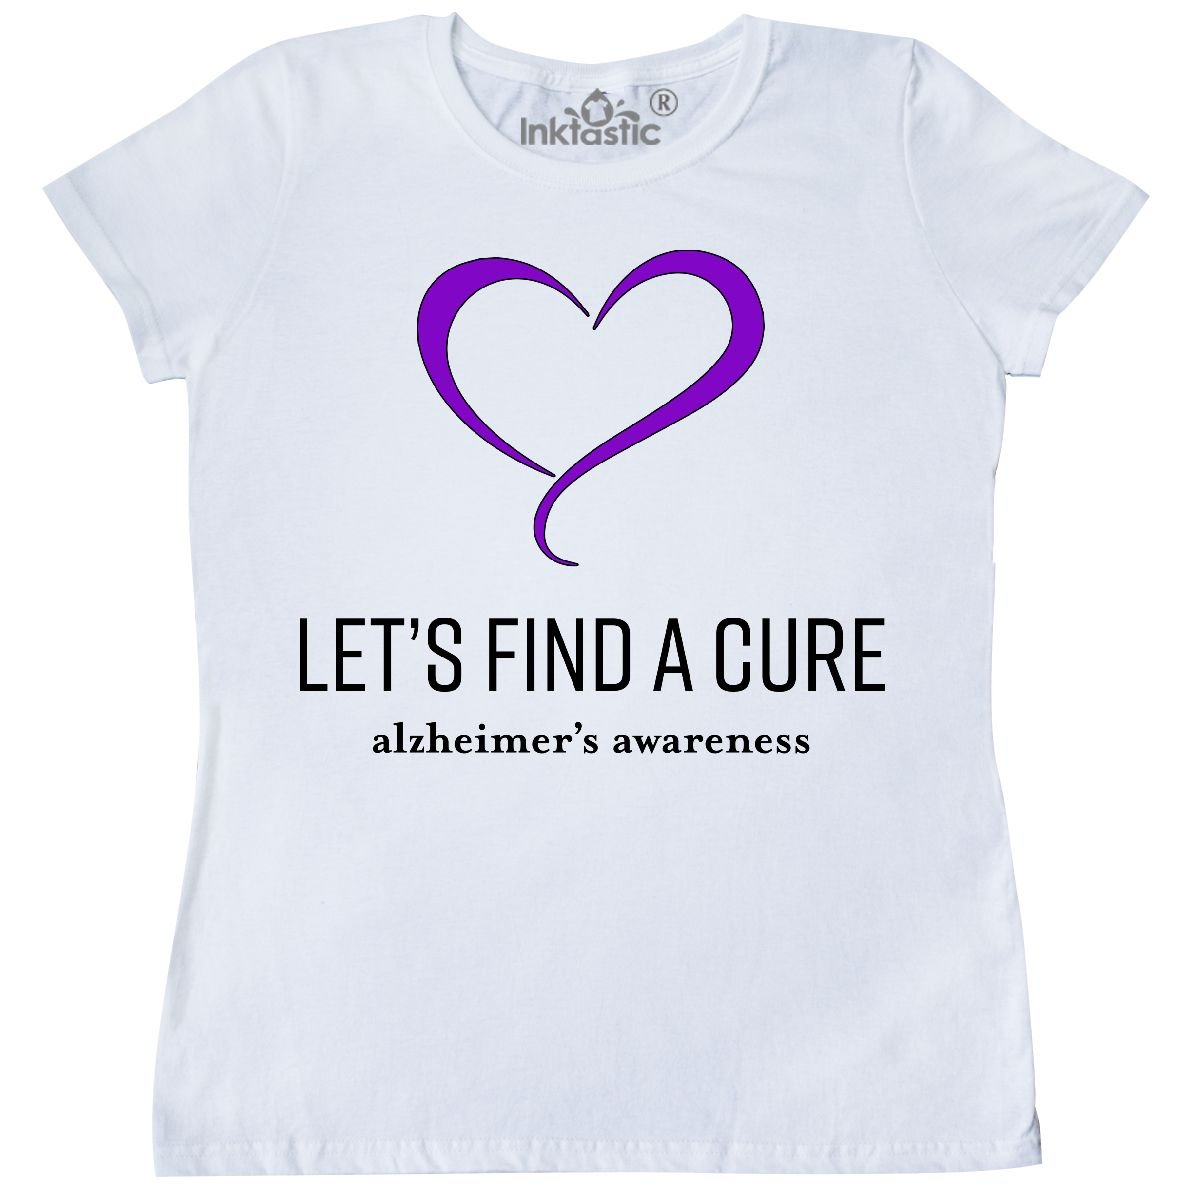 6fc5802e Amazon.com: inktastic - Let's Find a Cure- Alzheimer's Awareness Women's T- Shirt: Clothing